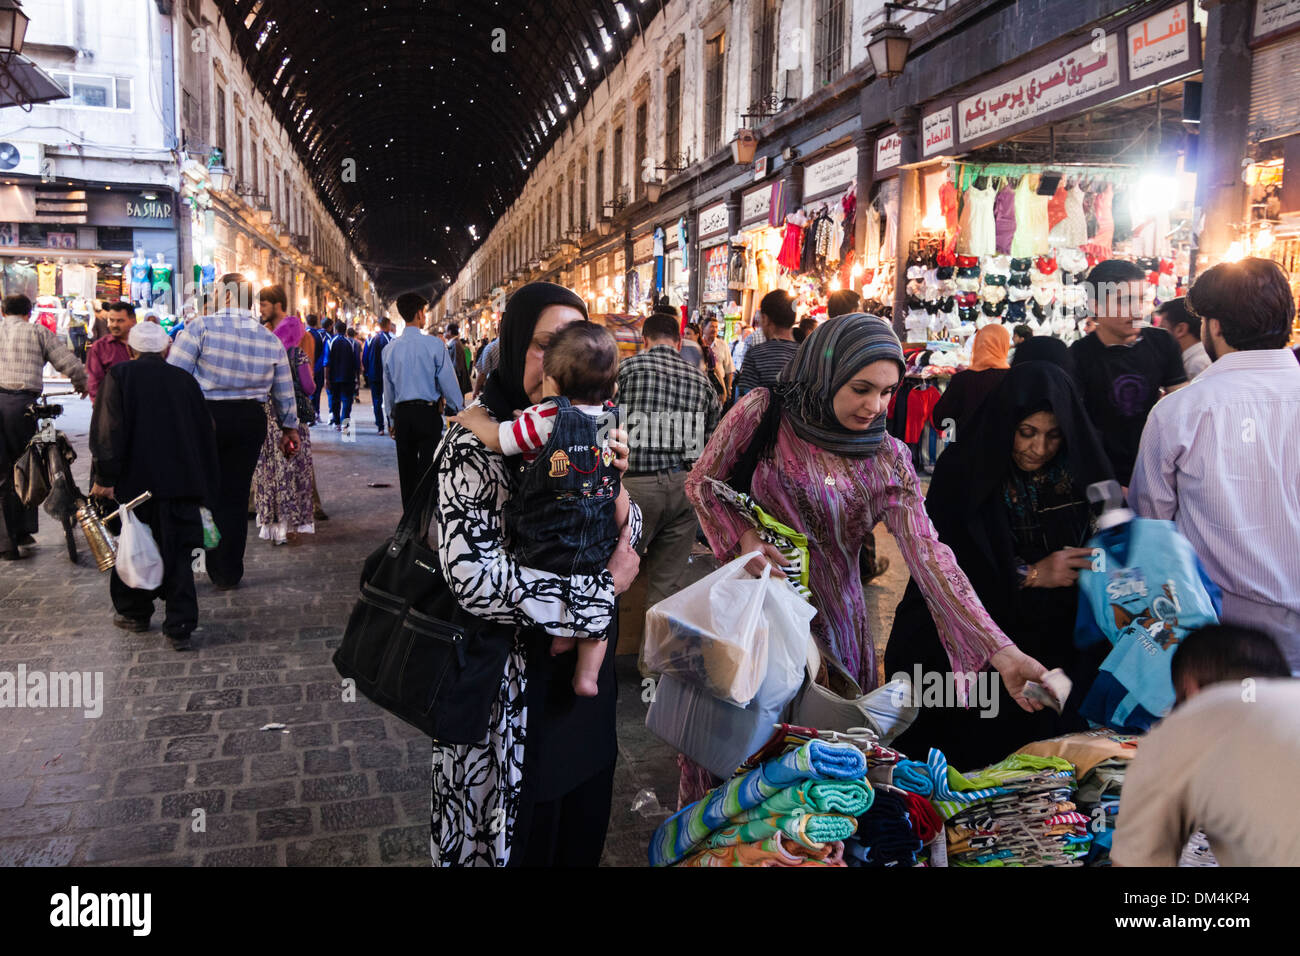 Donne arabe shopping in Al Souq Hamidiyah, Damasco, Siria Immagini Stock